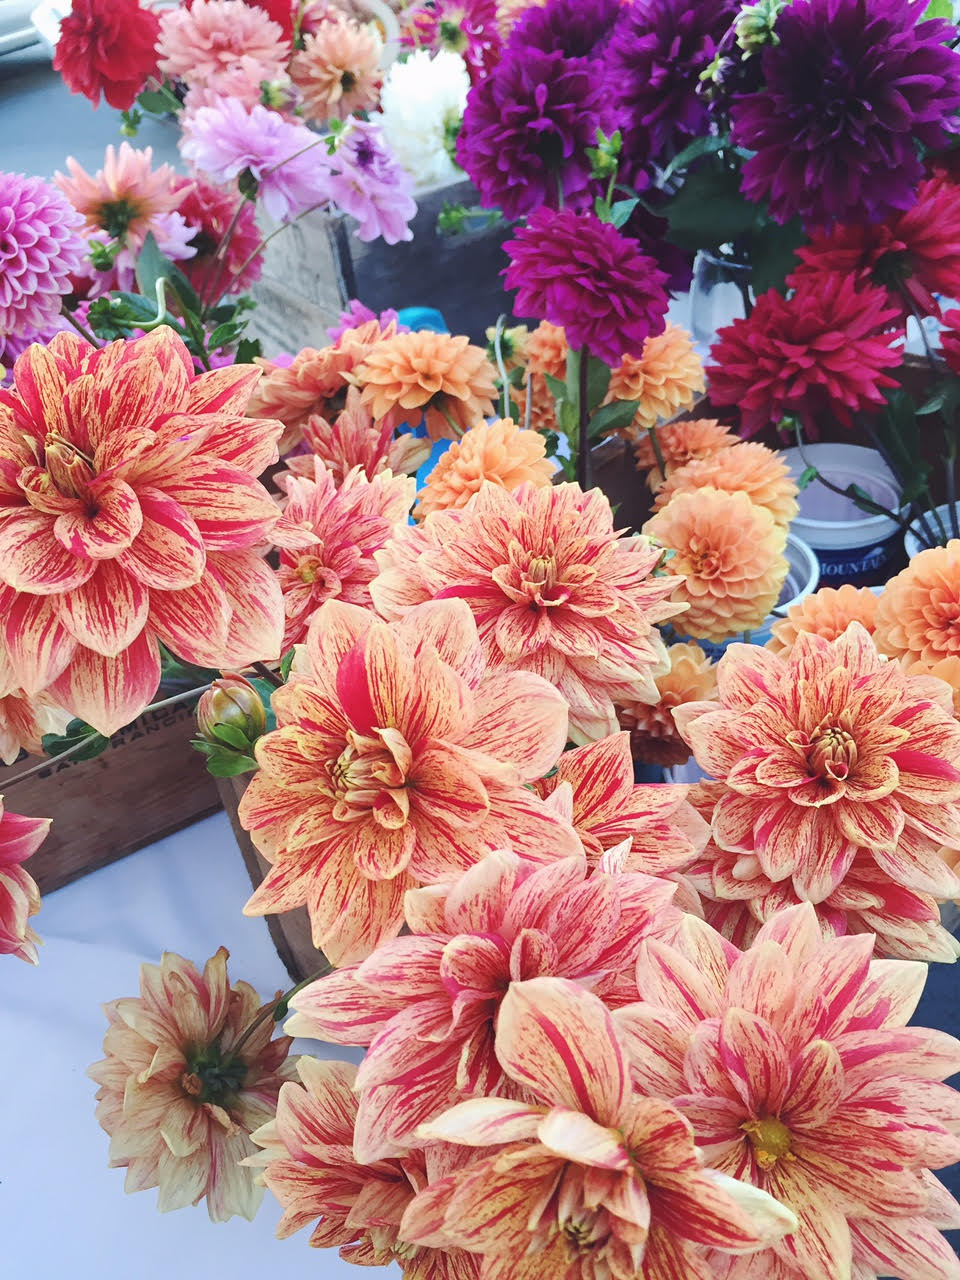 Dahlias at the farmer's market